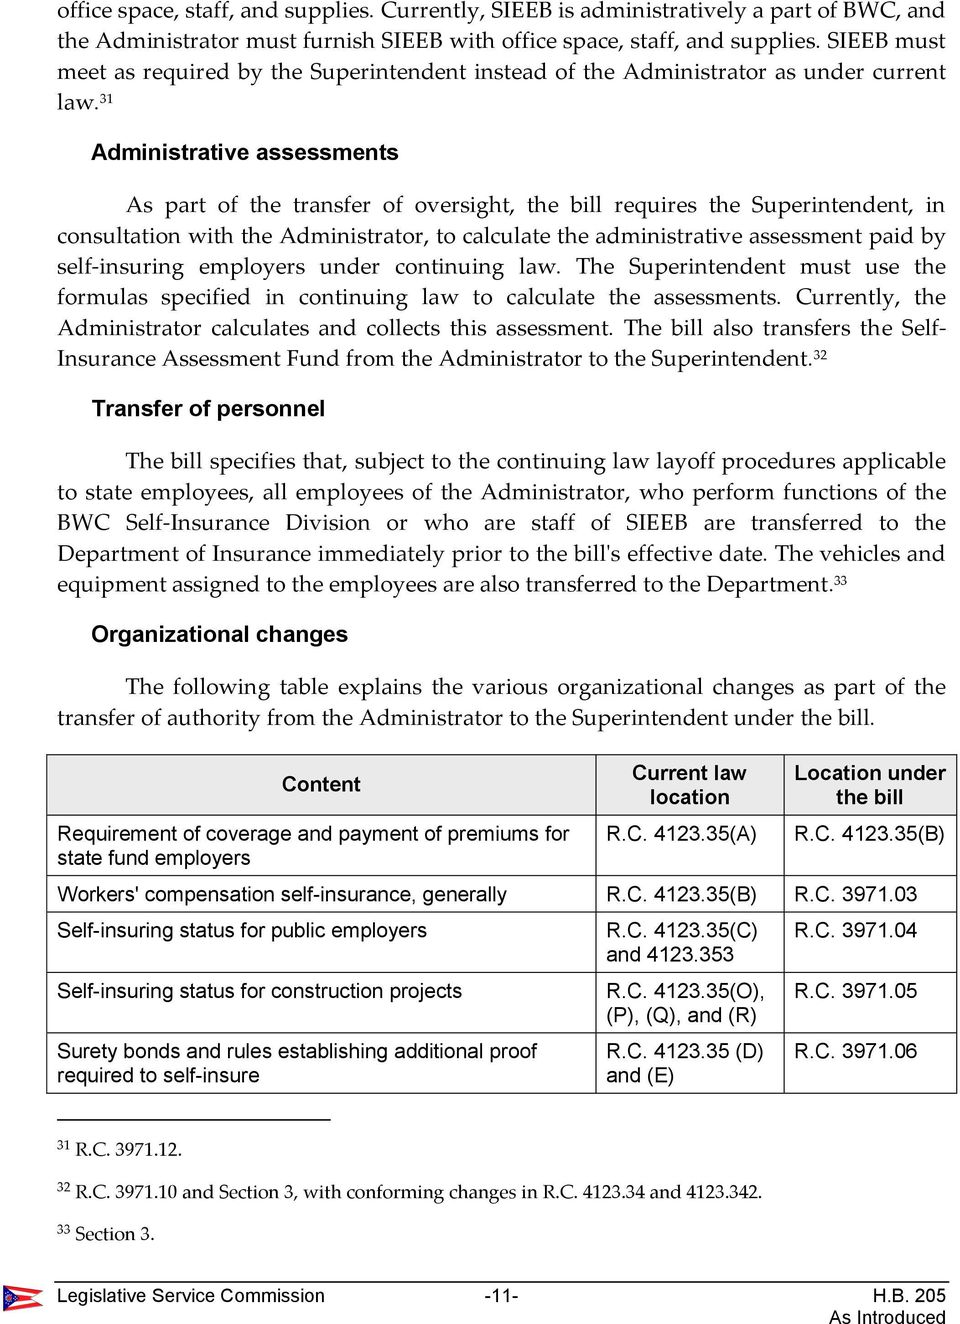 31 Administrative assessments As part of the transfer of oversight, the bill requires the Superintendent, in consultation with the Administrator, to calculate the administrative assessment paid by